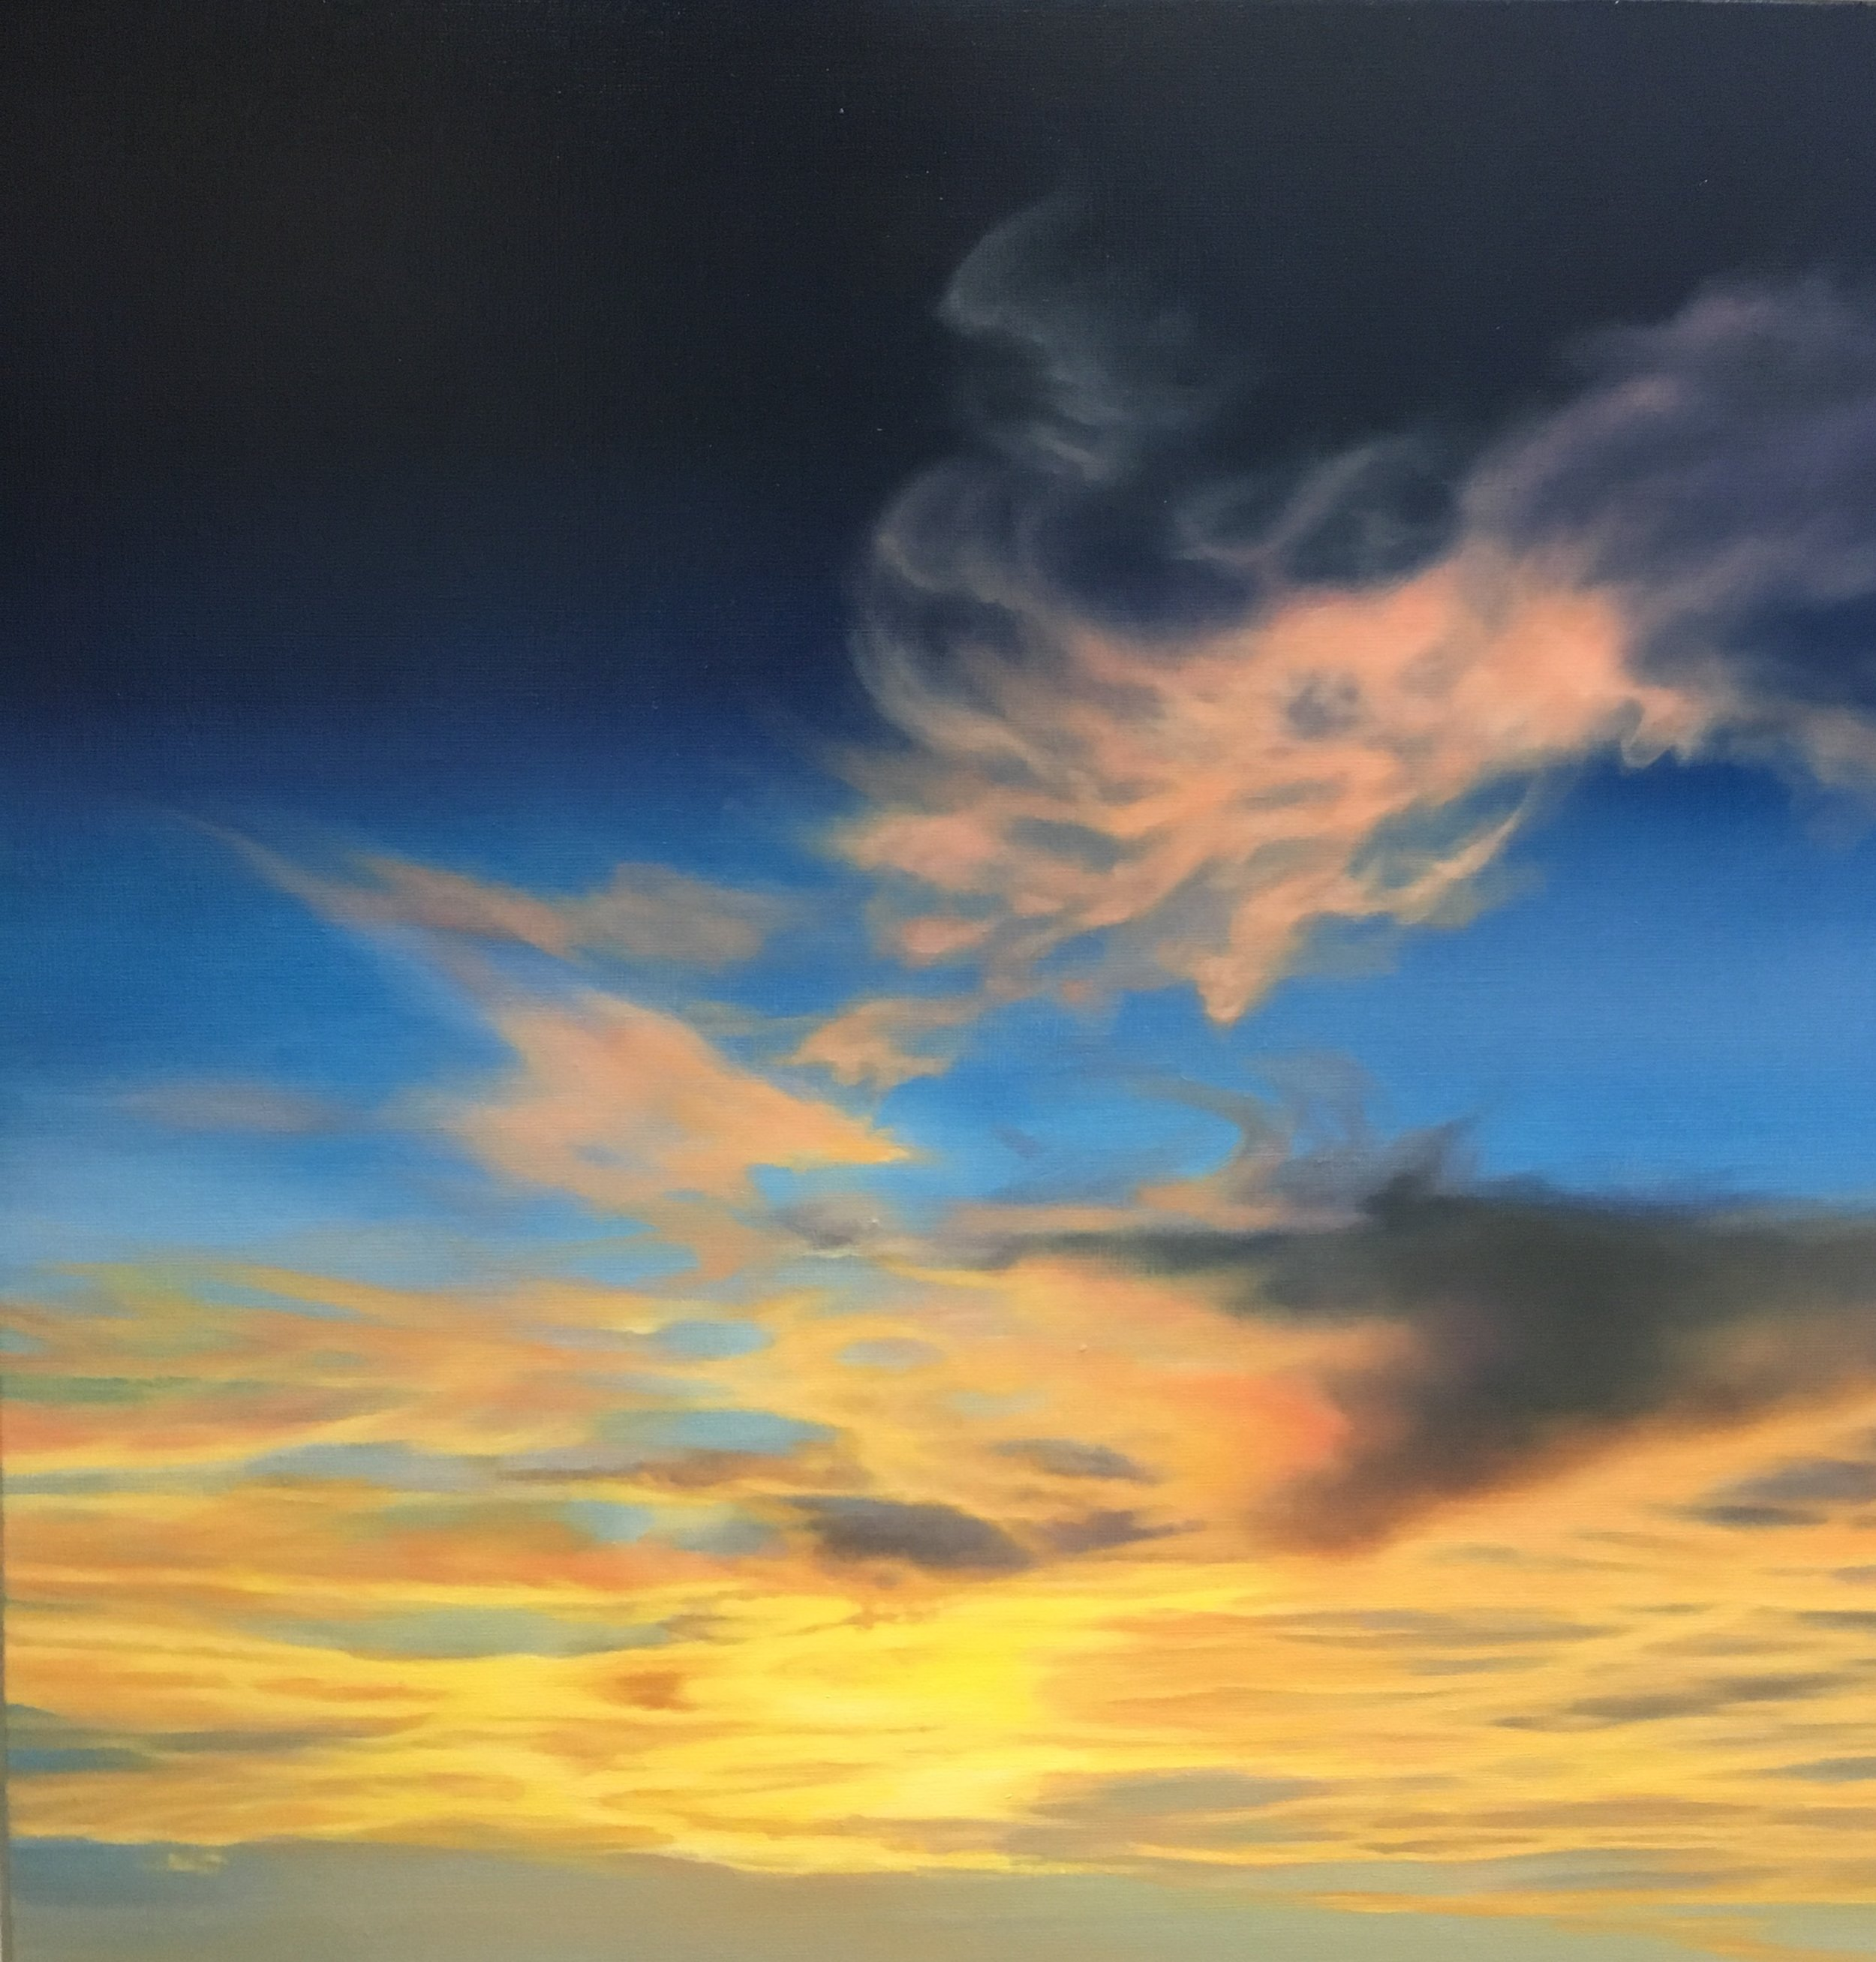 Carin Wagner │ Sky XI │ Oil on Linen │ 24 inches square or 61 cm square